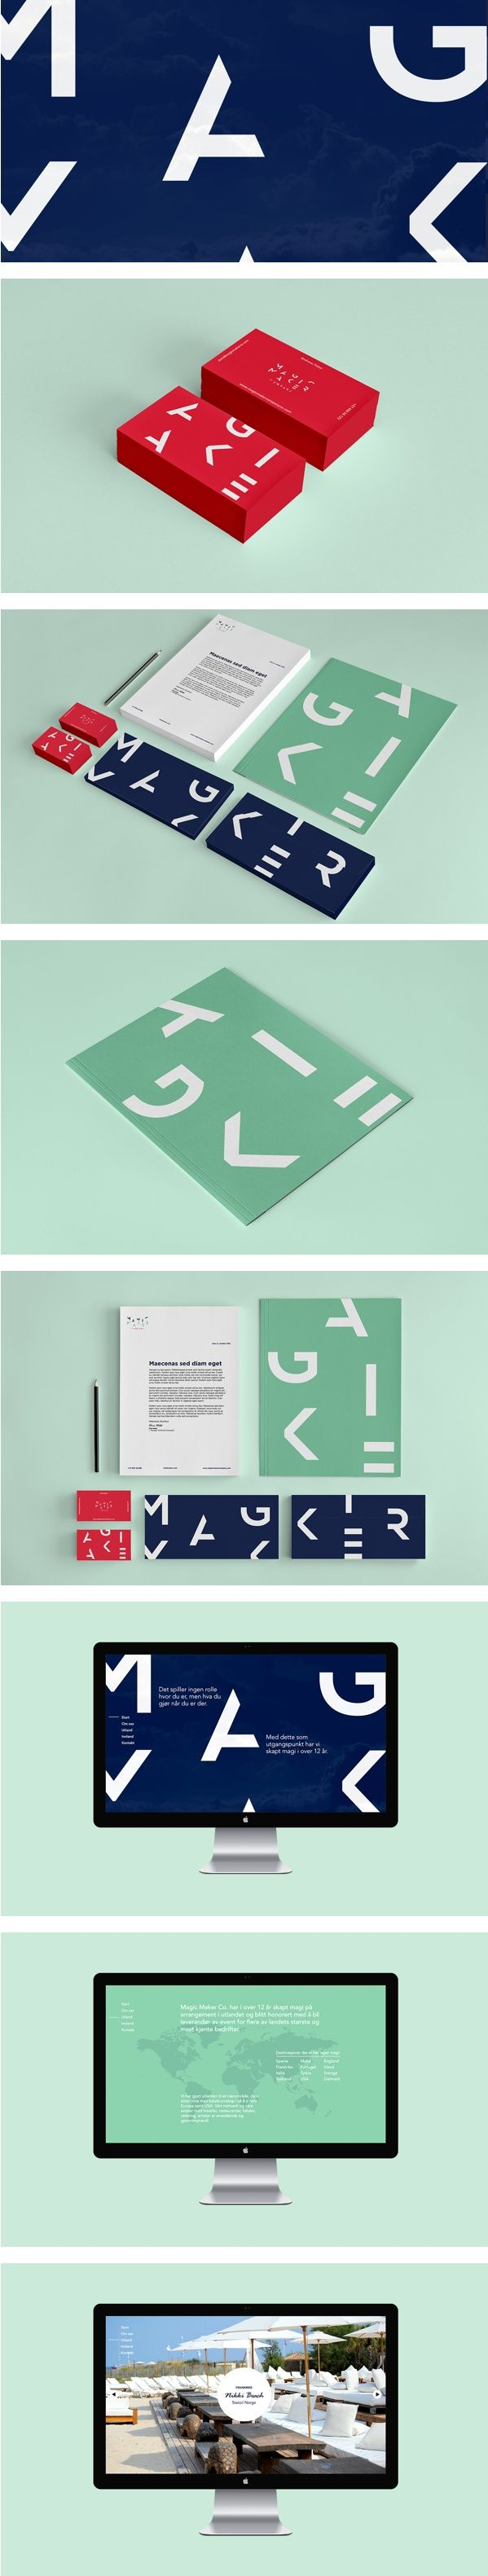 Magic Maker Co. by Knowhow , via Behance: